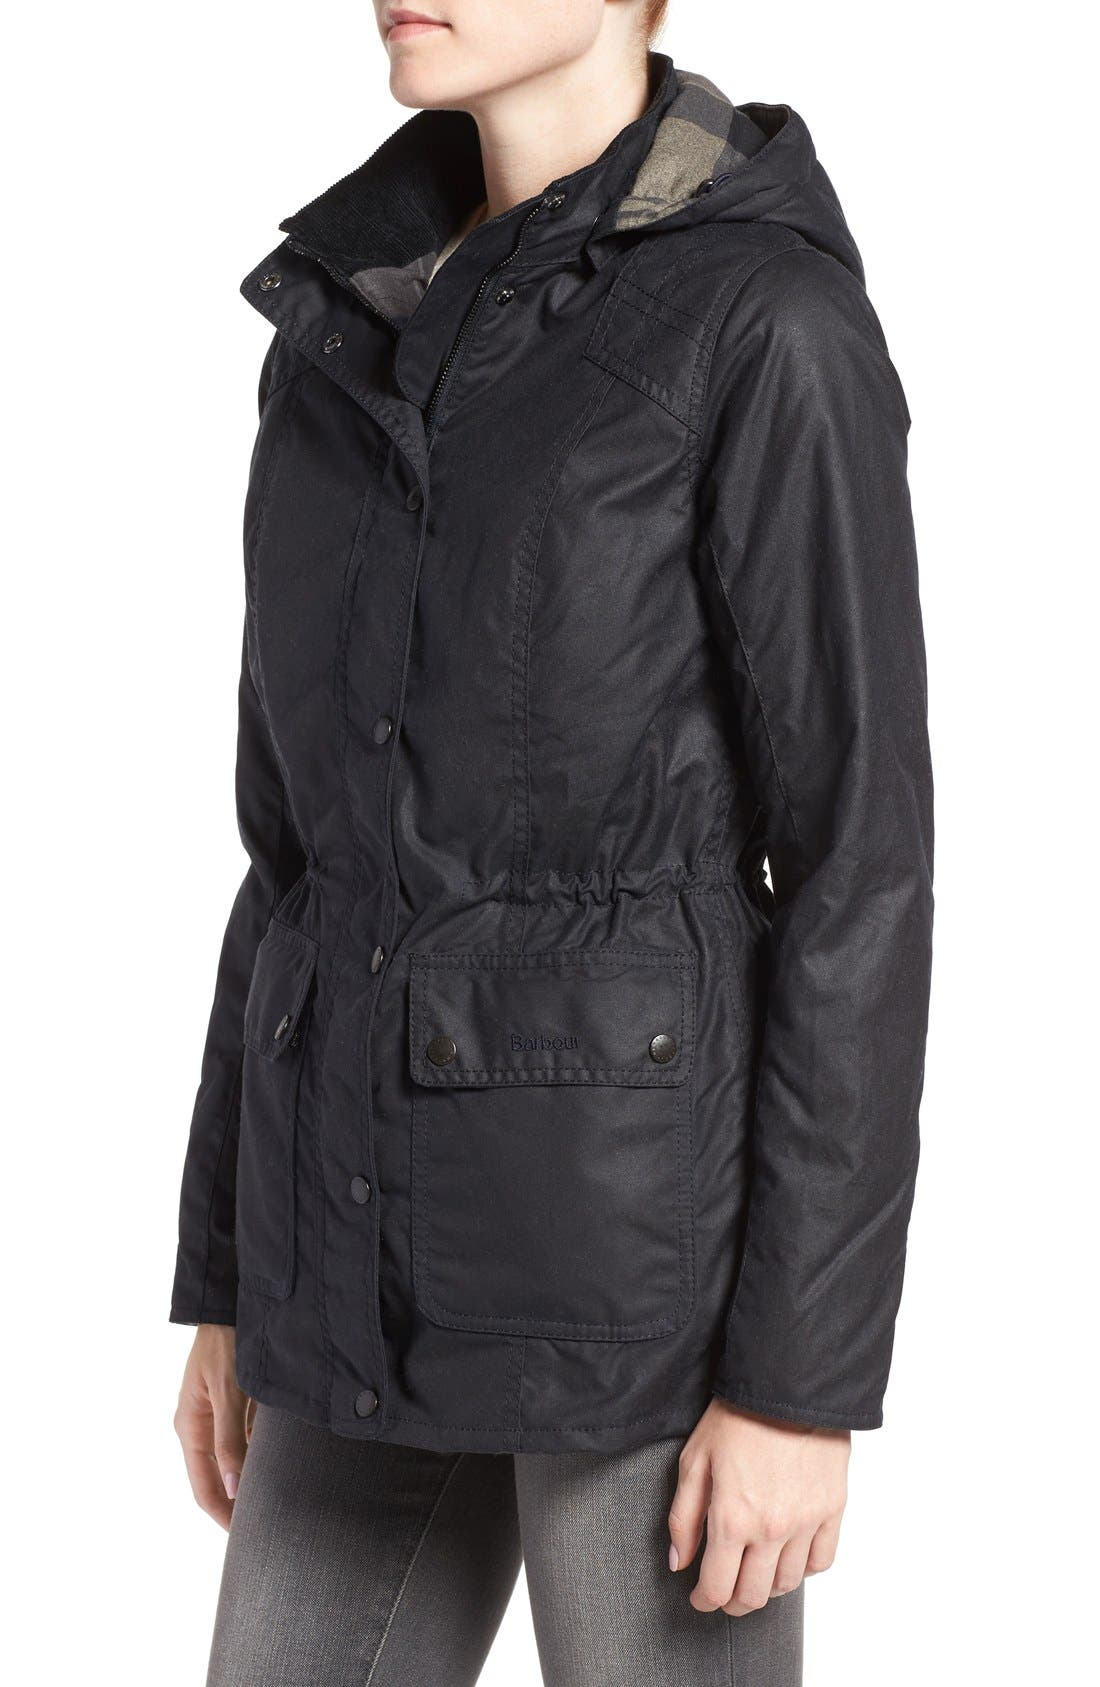 'Orkney' Waxed Cotton Anorak with Removable Hood,                             Alternate thumbnail 4, color,                             410